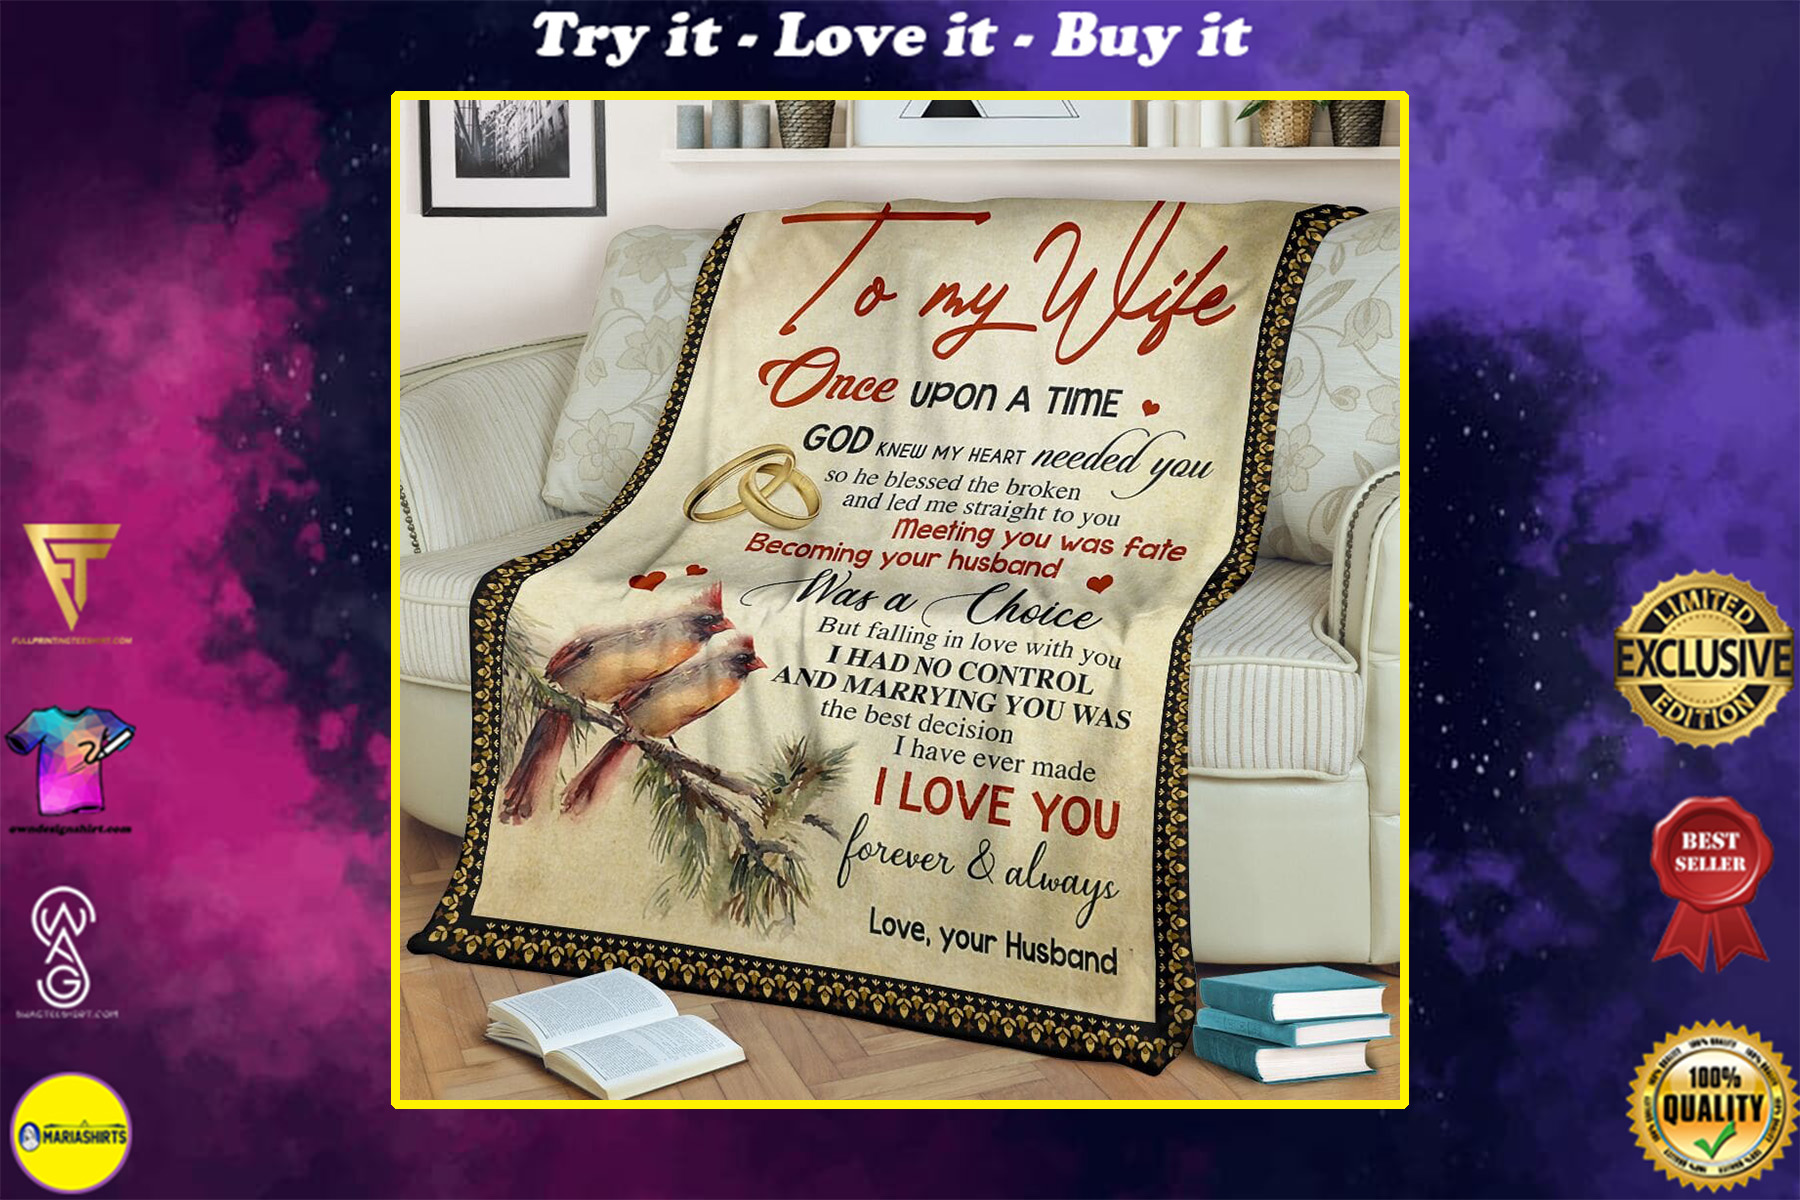 to my wife once upon a time God knew my heart needed you full printing blanket